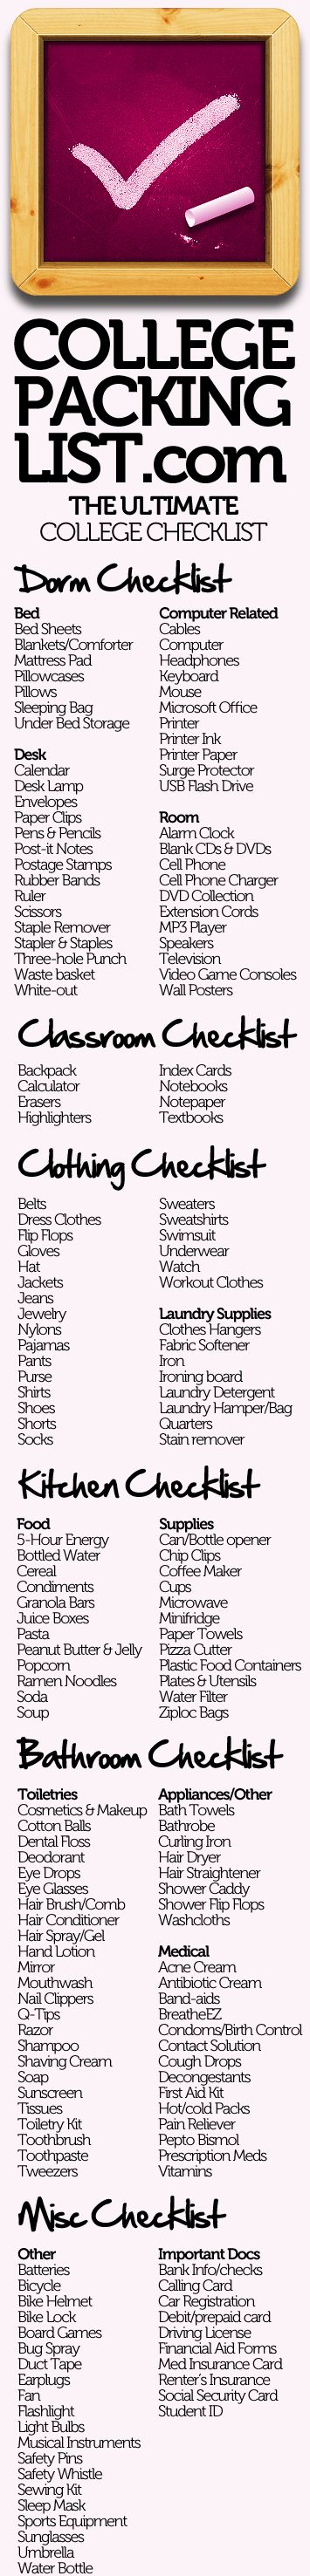 dorm necessities: College Bound, Dorm Room, Check List, College Life, College Dorm, College Checklist, College Stuff, Collegelife, College Packing Lists